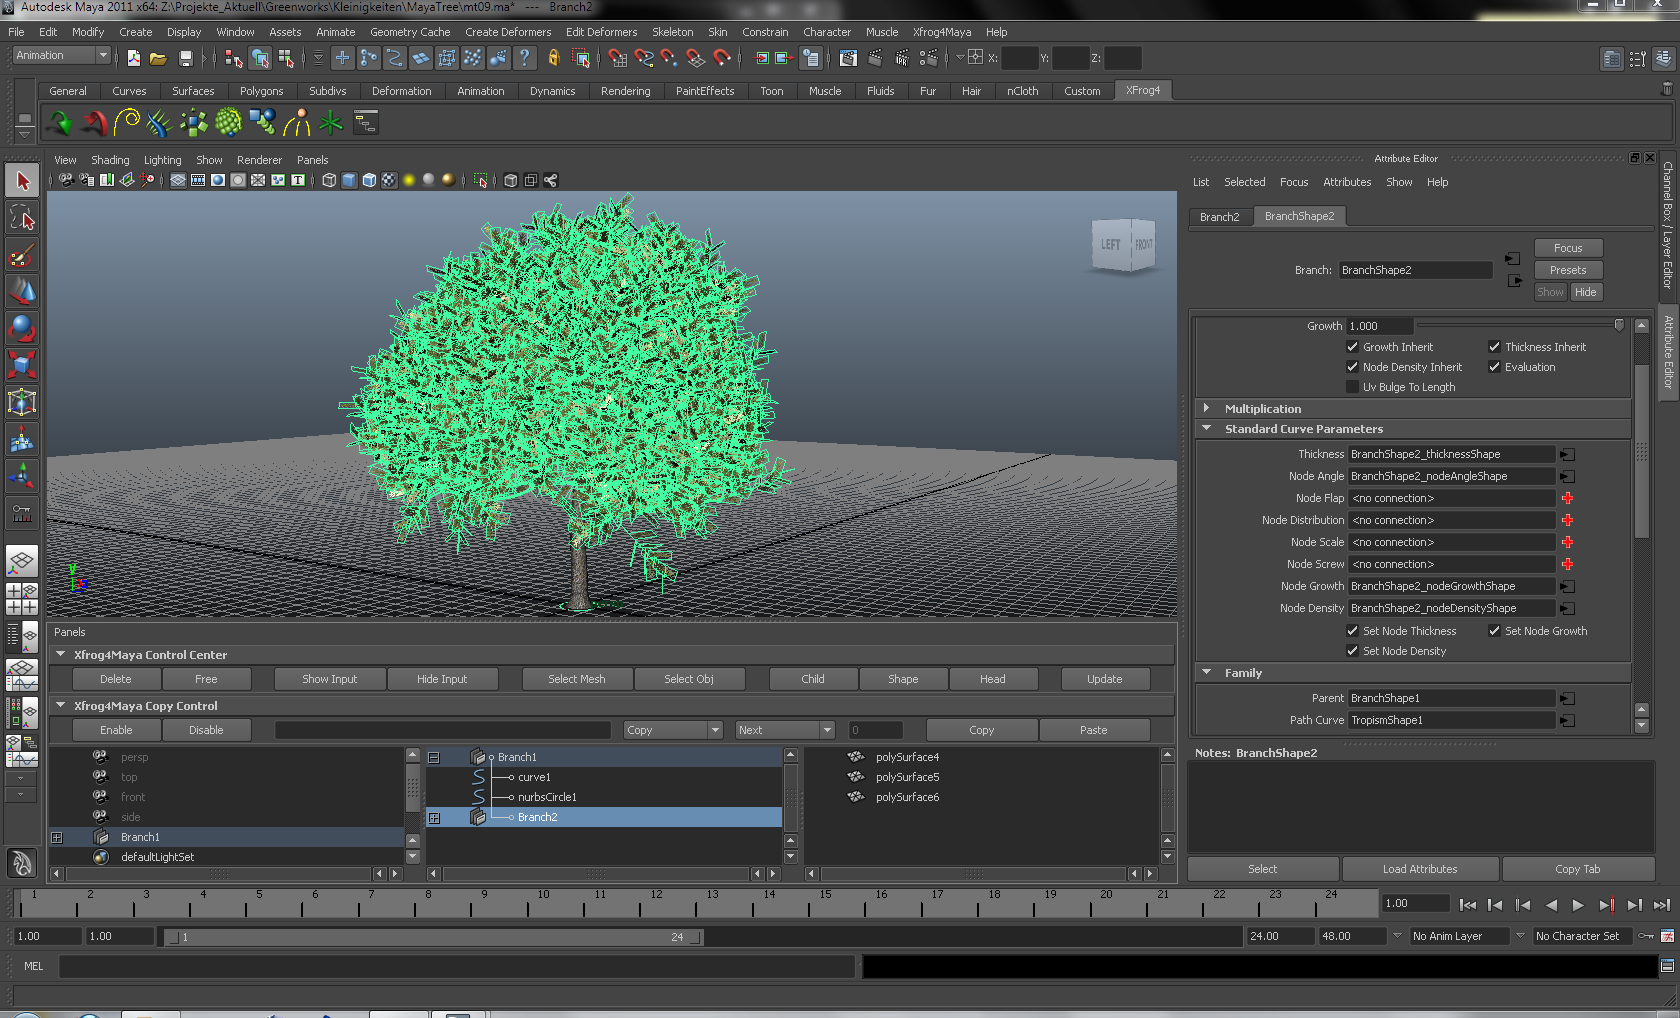 Xfrog 5 for MAYA now available - Xfrog